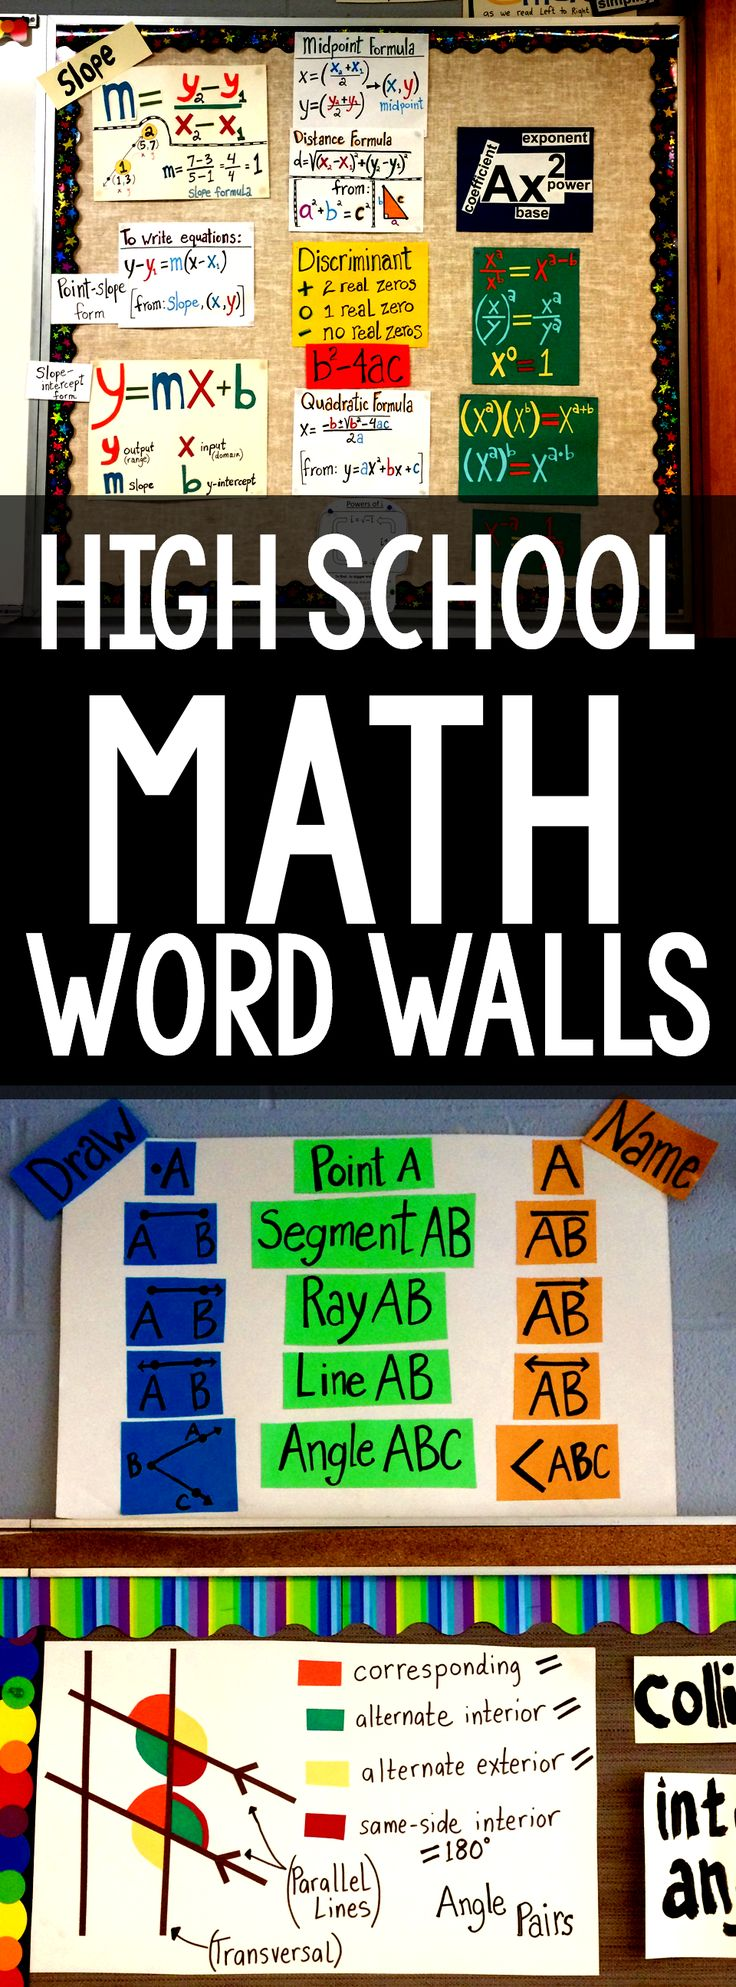 Math word wall ideas for high school math classes. There are ideas or Algebra, Geometry and Algebra 2 with links to math word walls for middle school math classes.